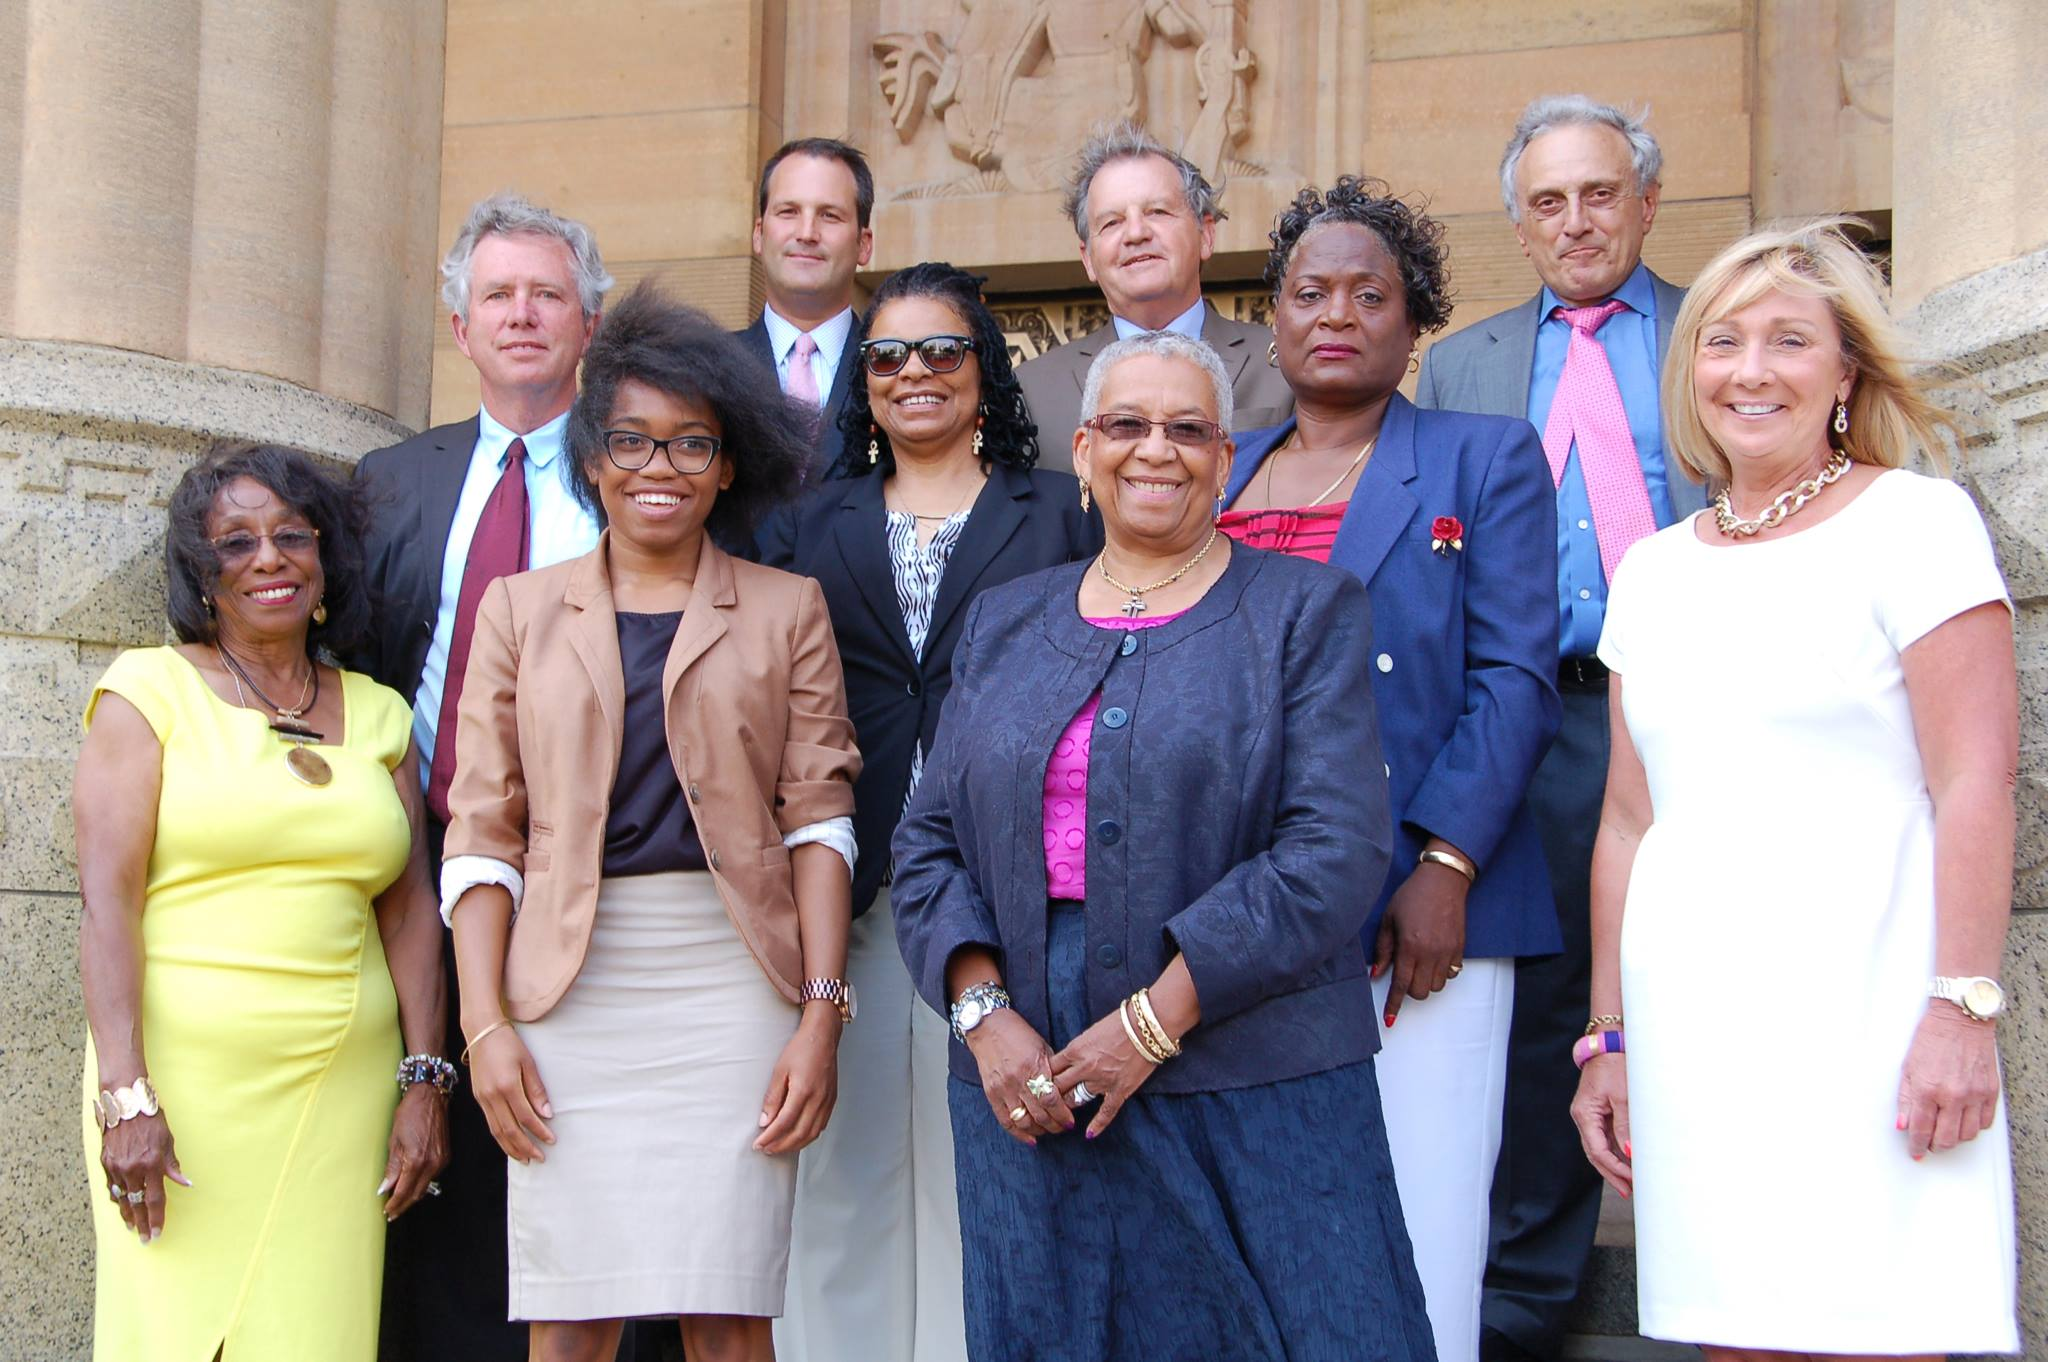 The new Buffalo Board of Education members were sworn in July 1st, 2014 at Buffalo City Hall. The newly established board elected James Sampson as its president.